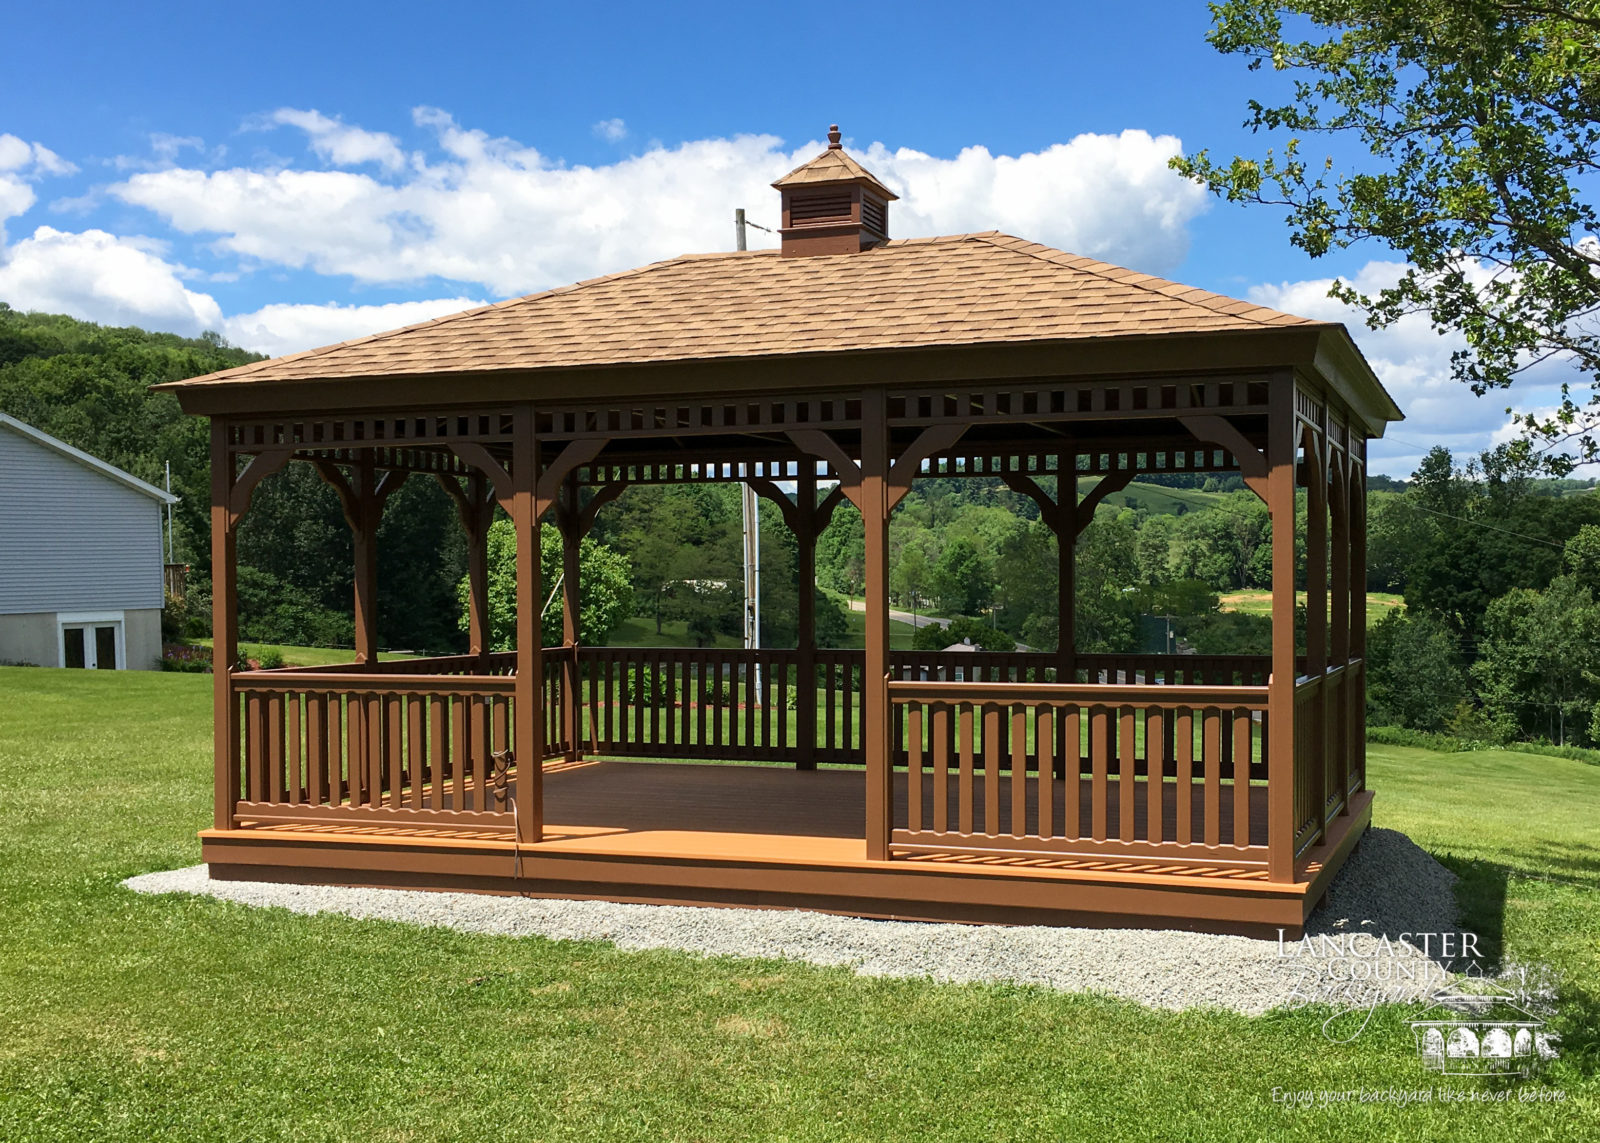 rectangular wooden gazebos